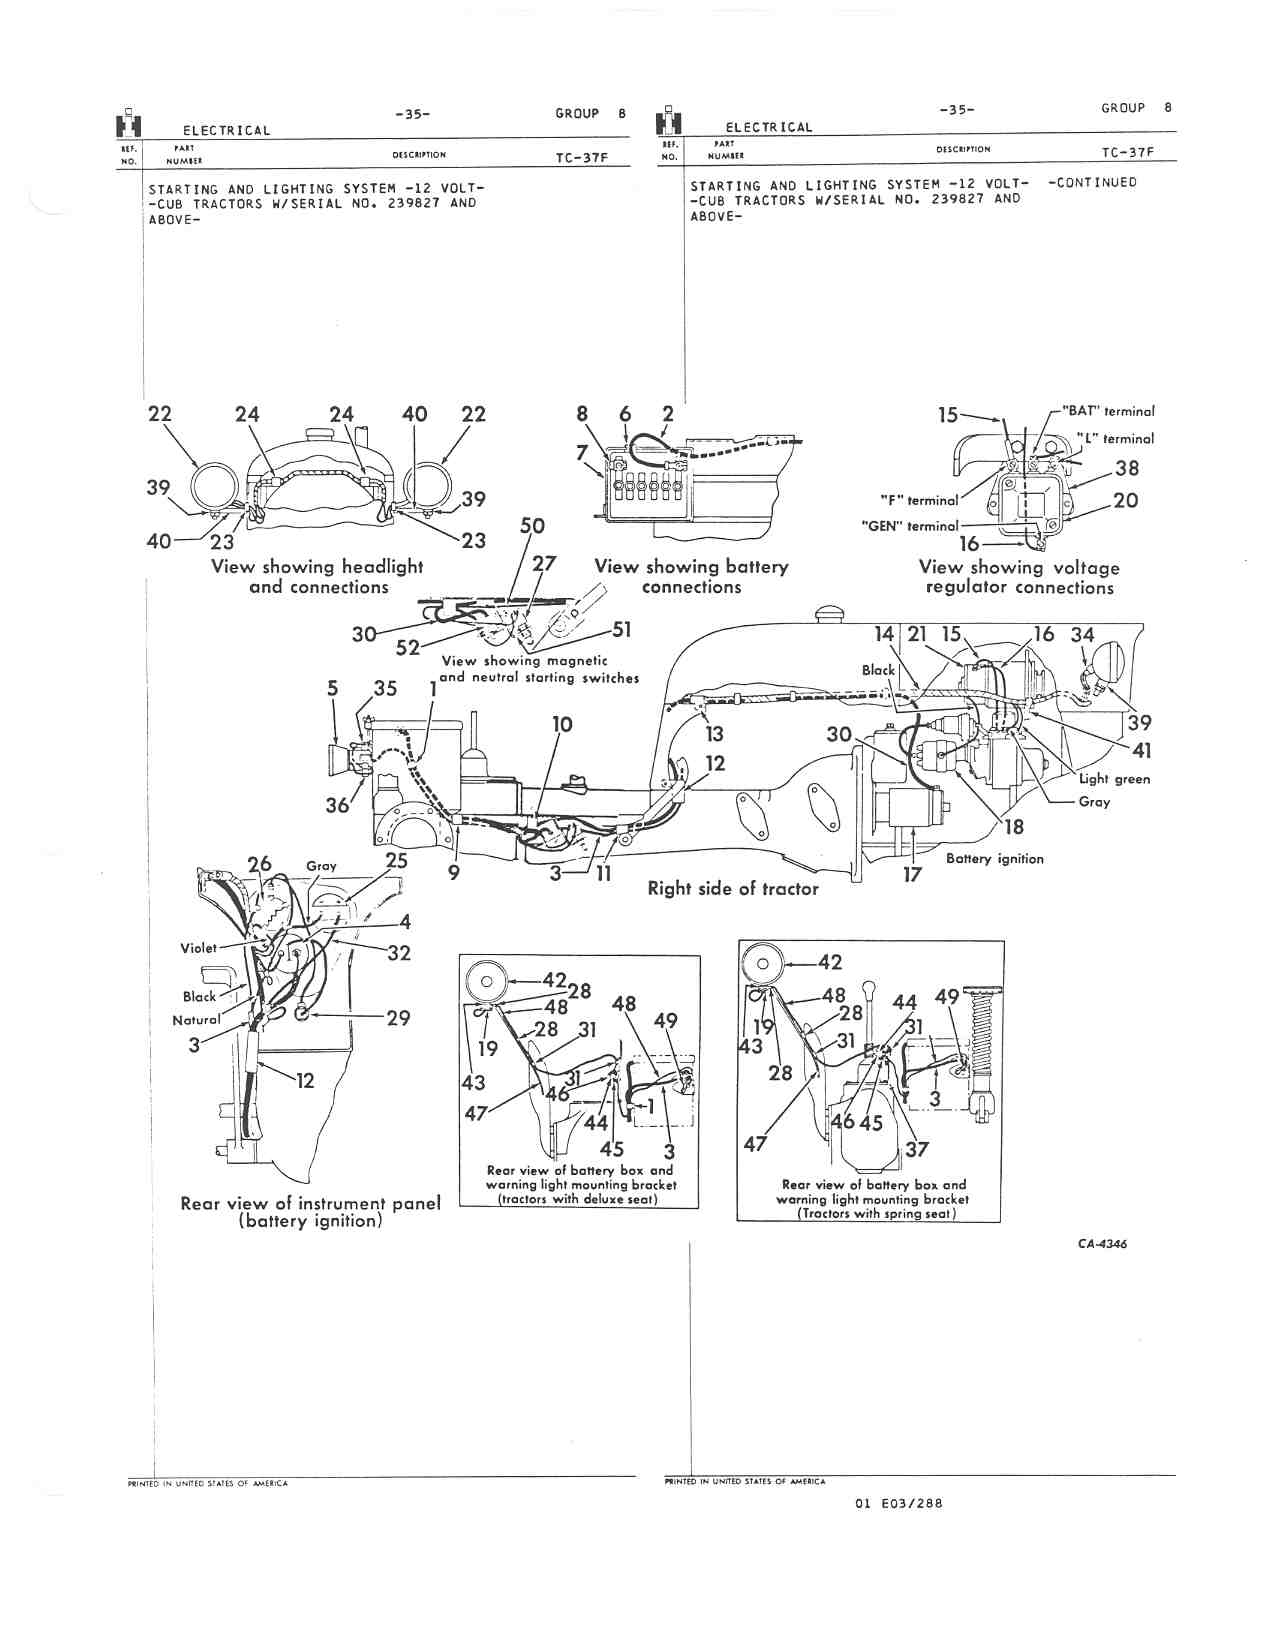 41e19 conversion farmall h wiring diagram | wiring resources 12 volt conversion wiring diagram car tuning 6 to 12 volt conversion with one wire alternator wiring resources